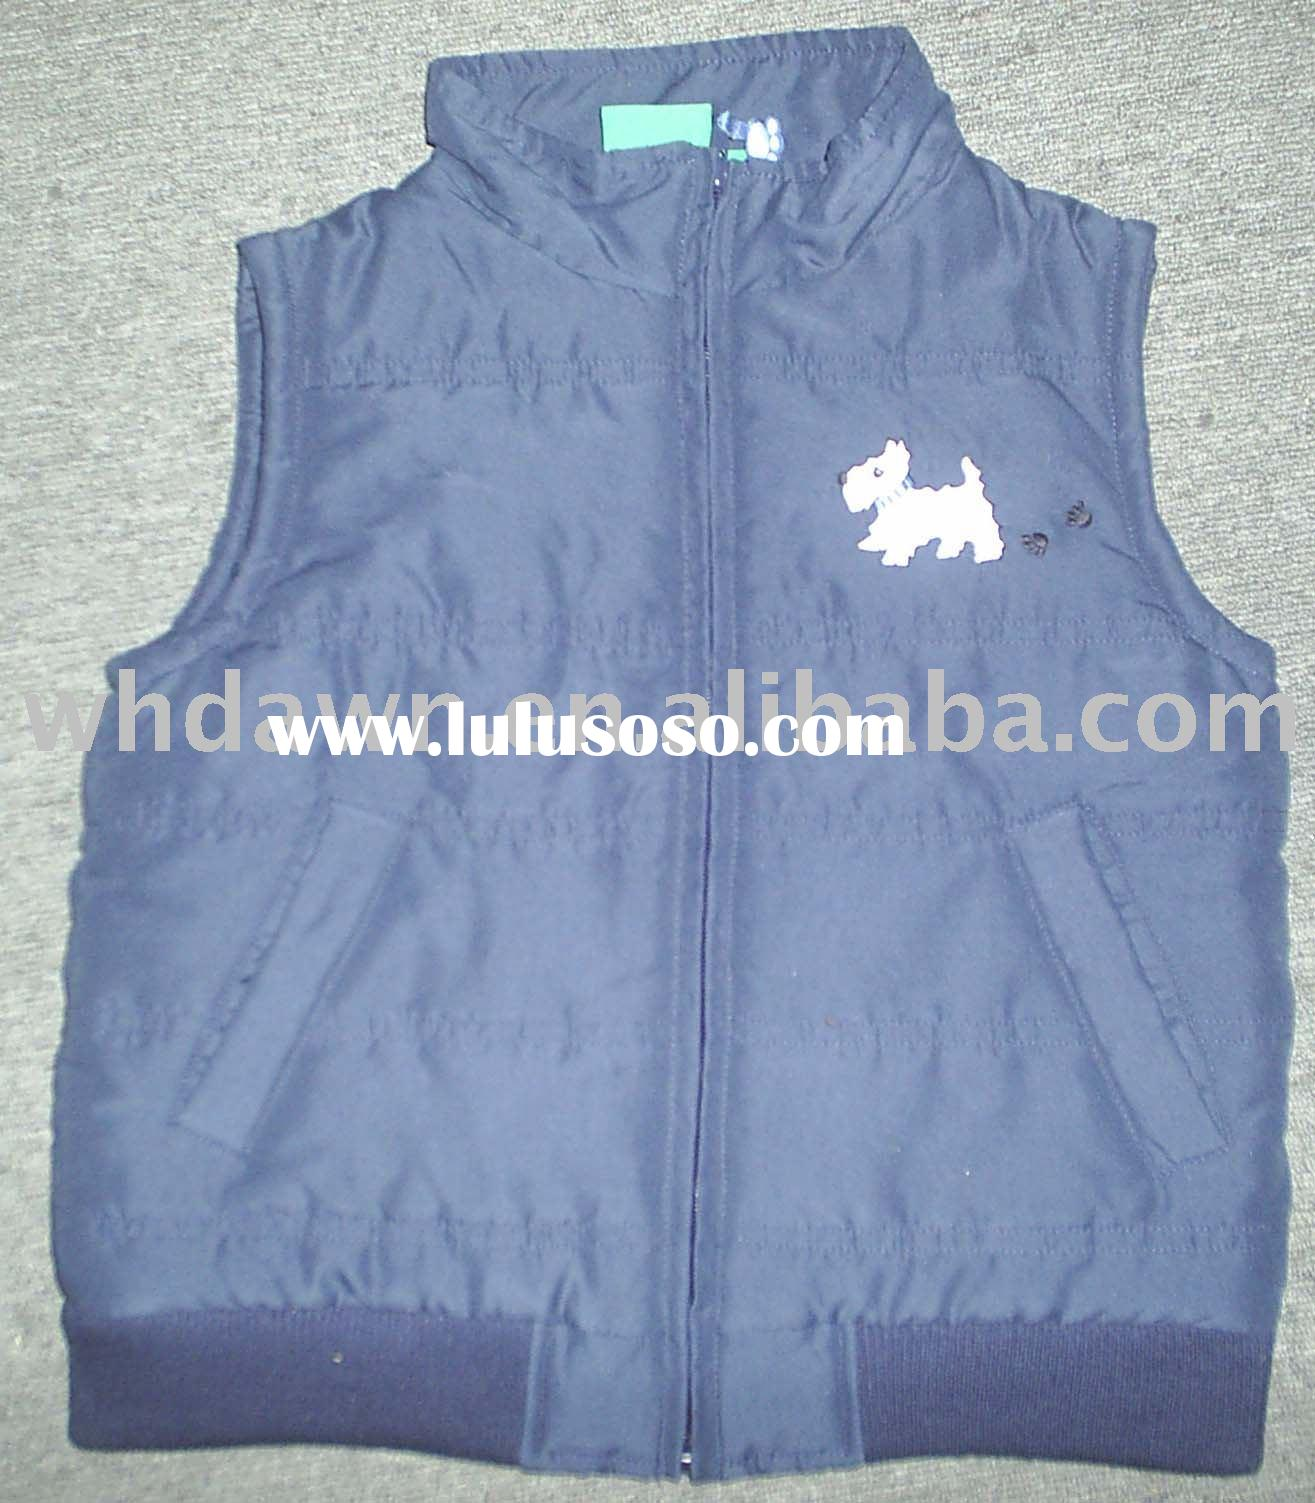 Children's vest,boy's vest, chidren's coats, children's jacket, chil